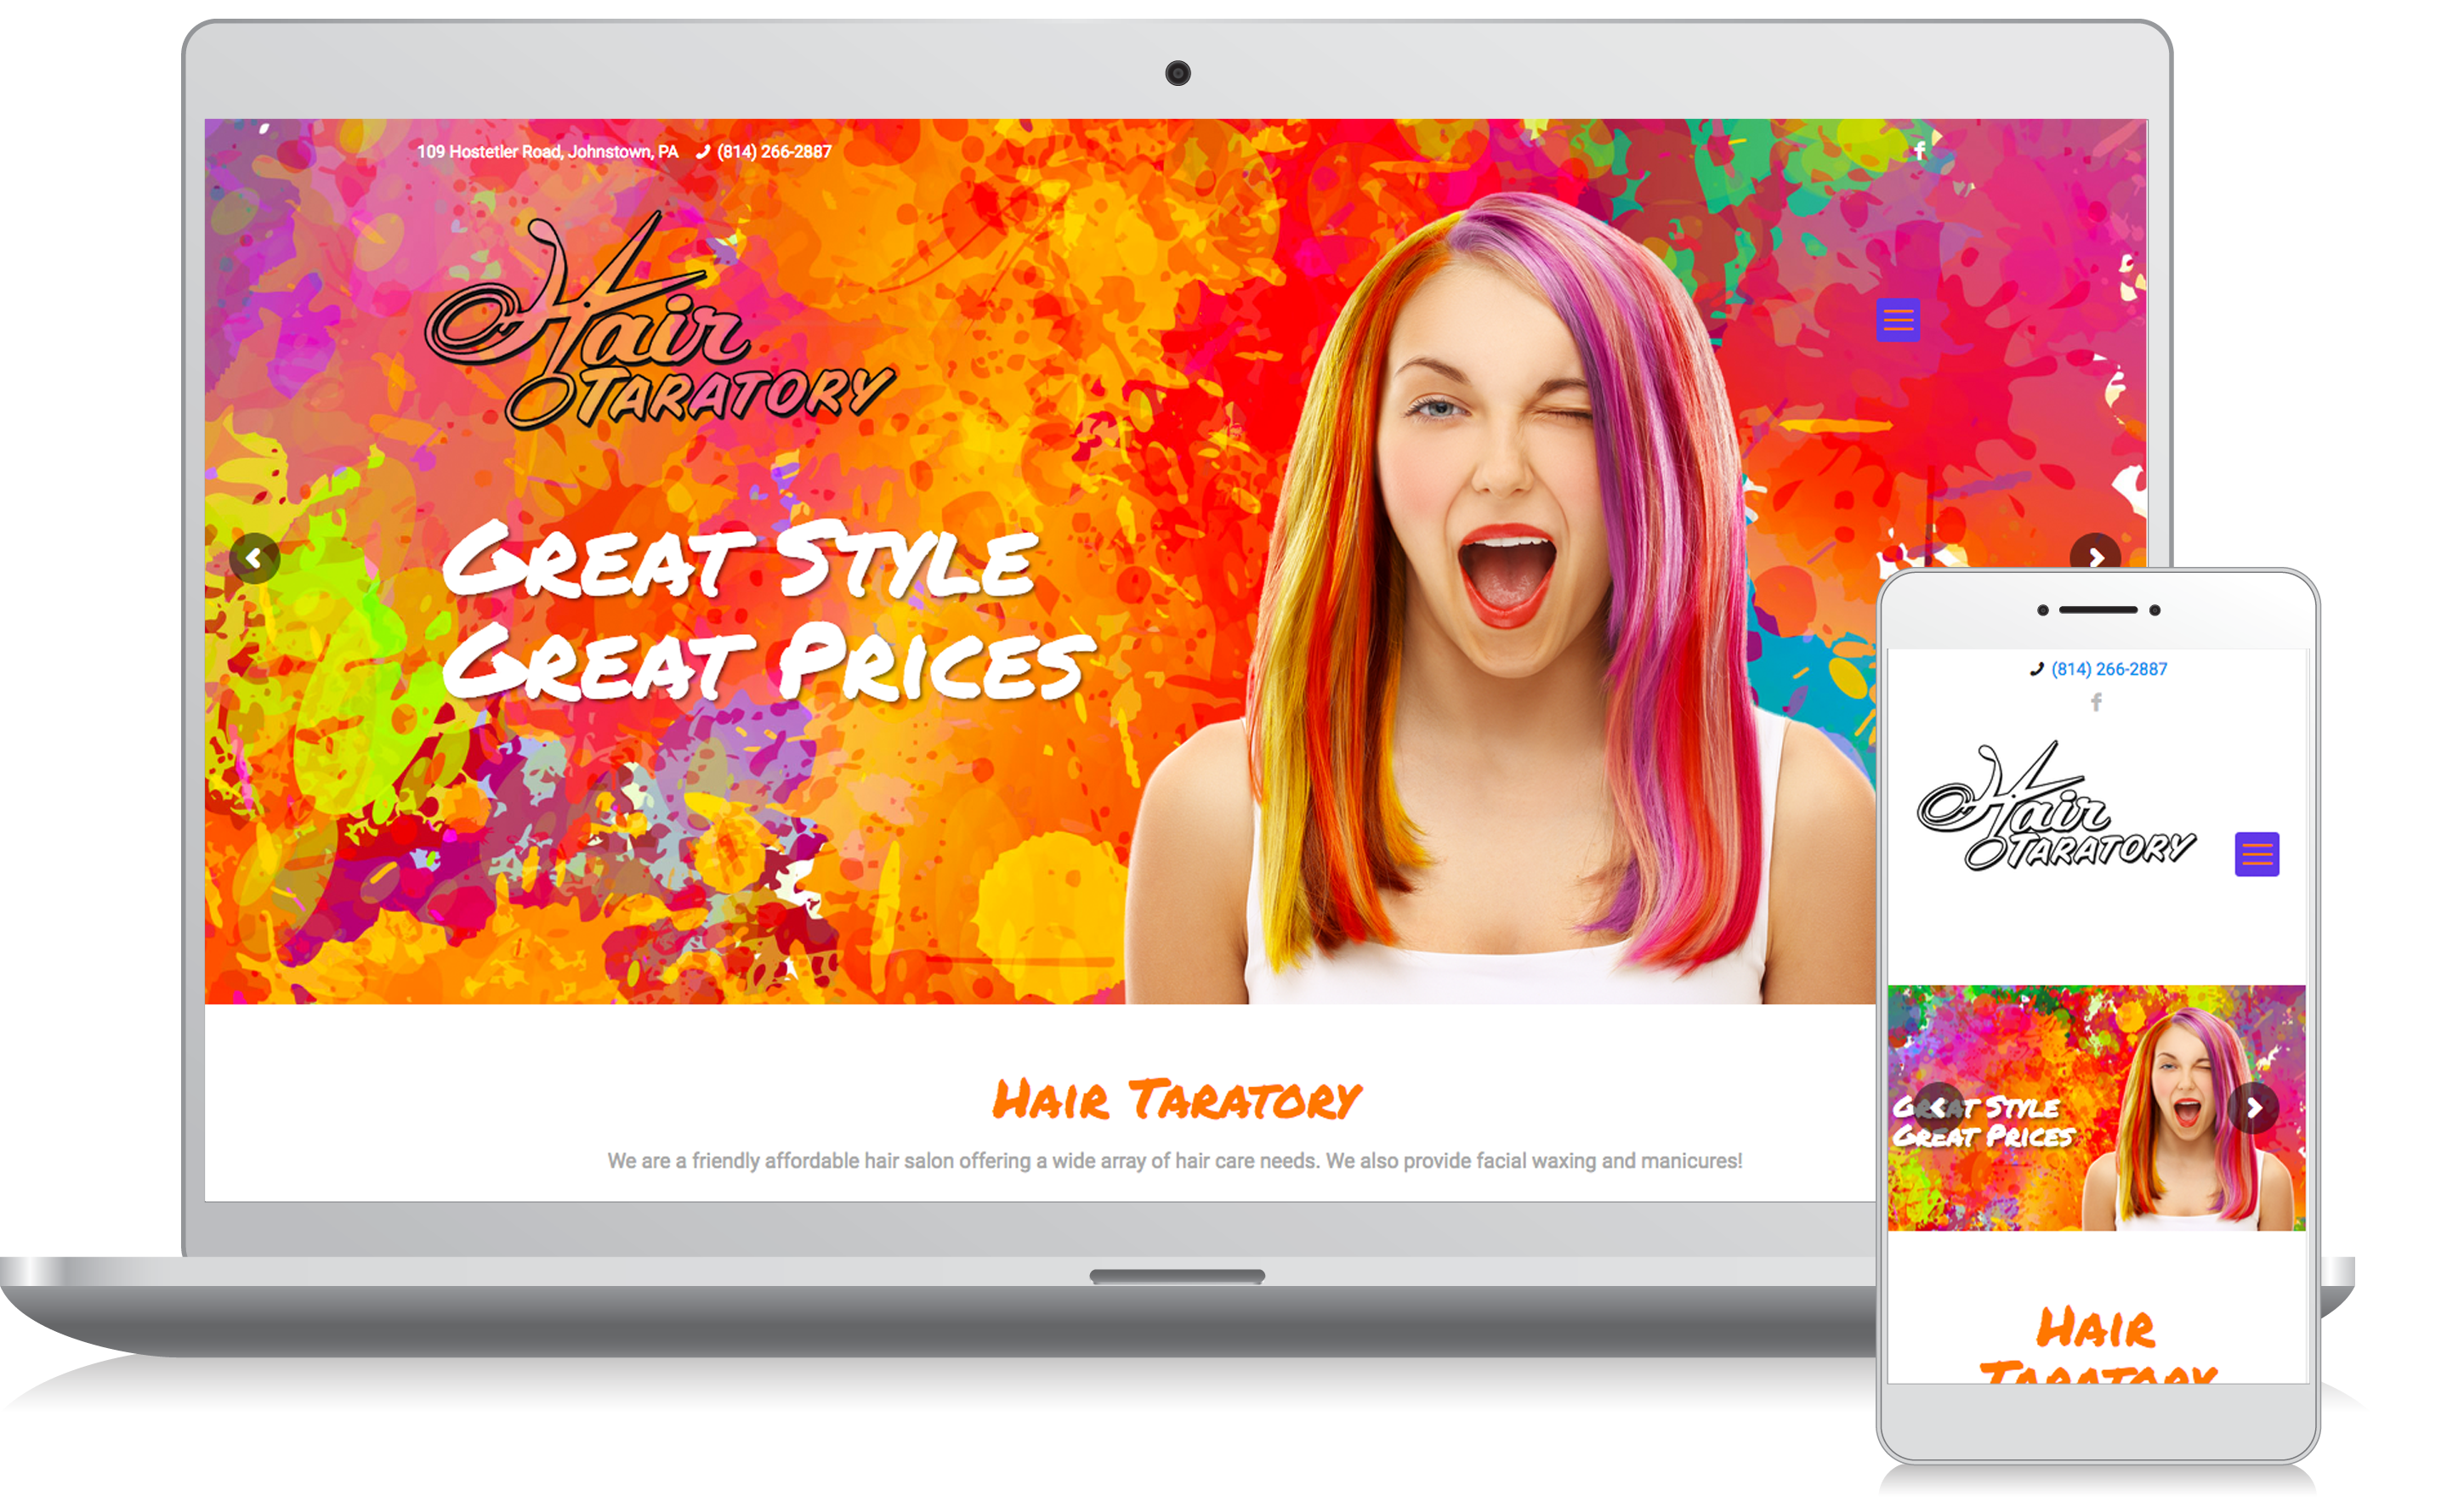 Cellphone and computer image of the Hair Taratory website homepage